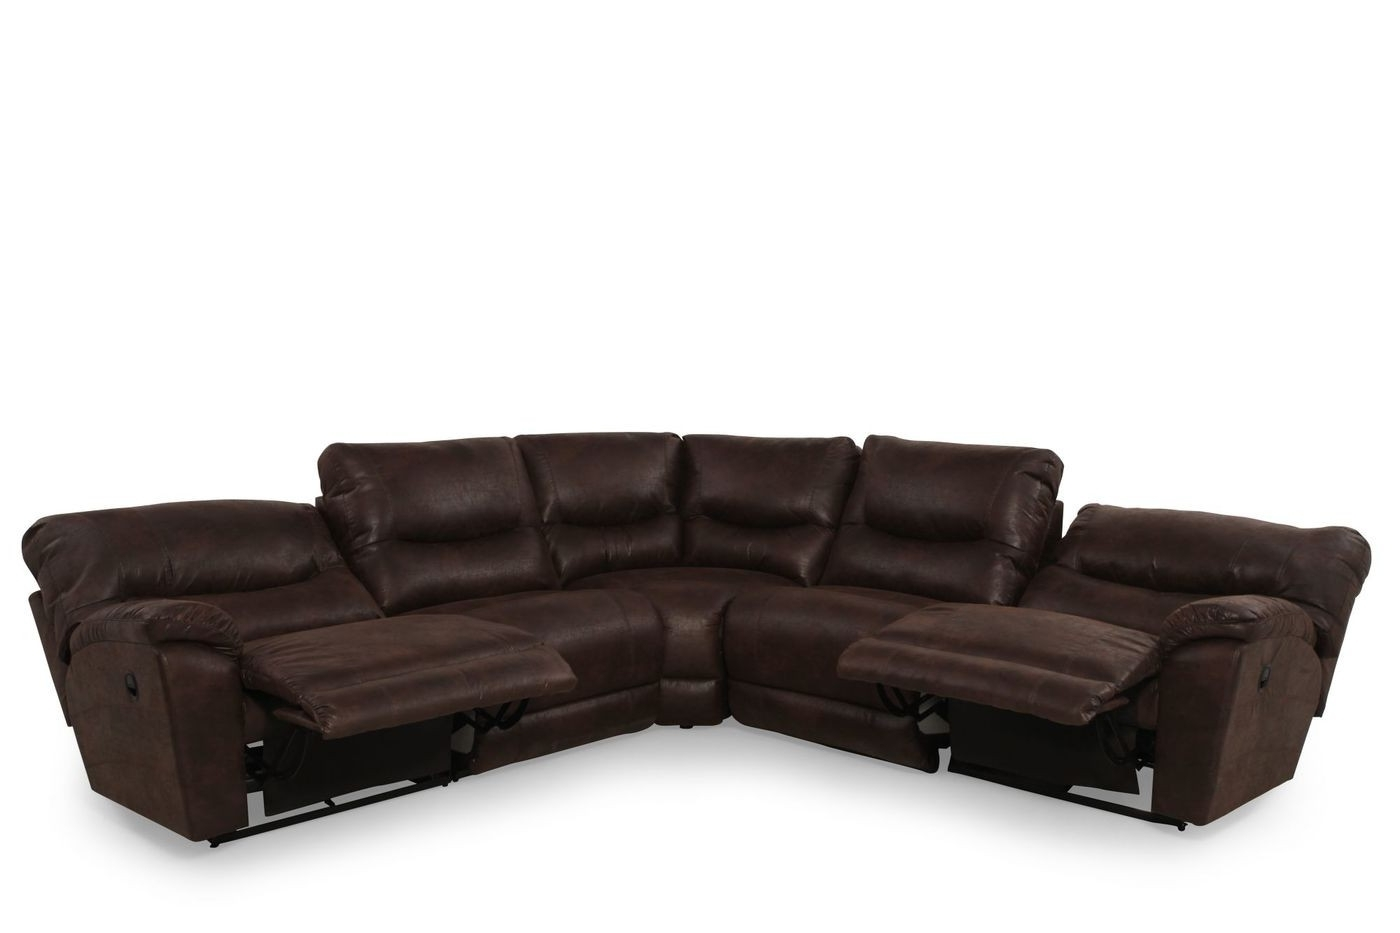 1025Theparty For Mathis Brothers Sectional Sofas (View 1 of 20)